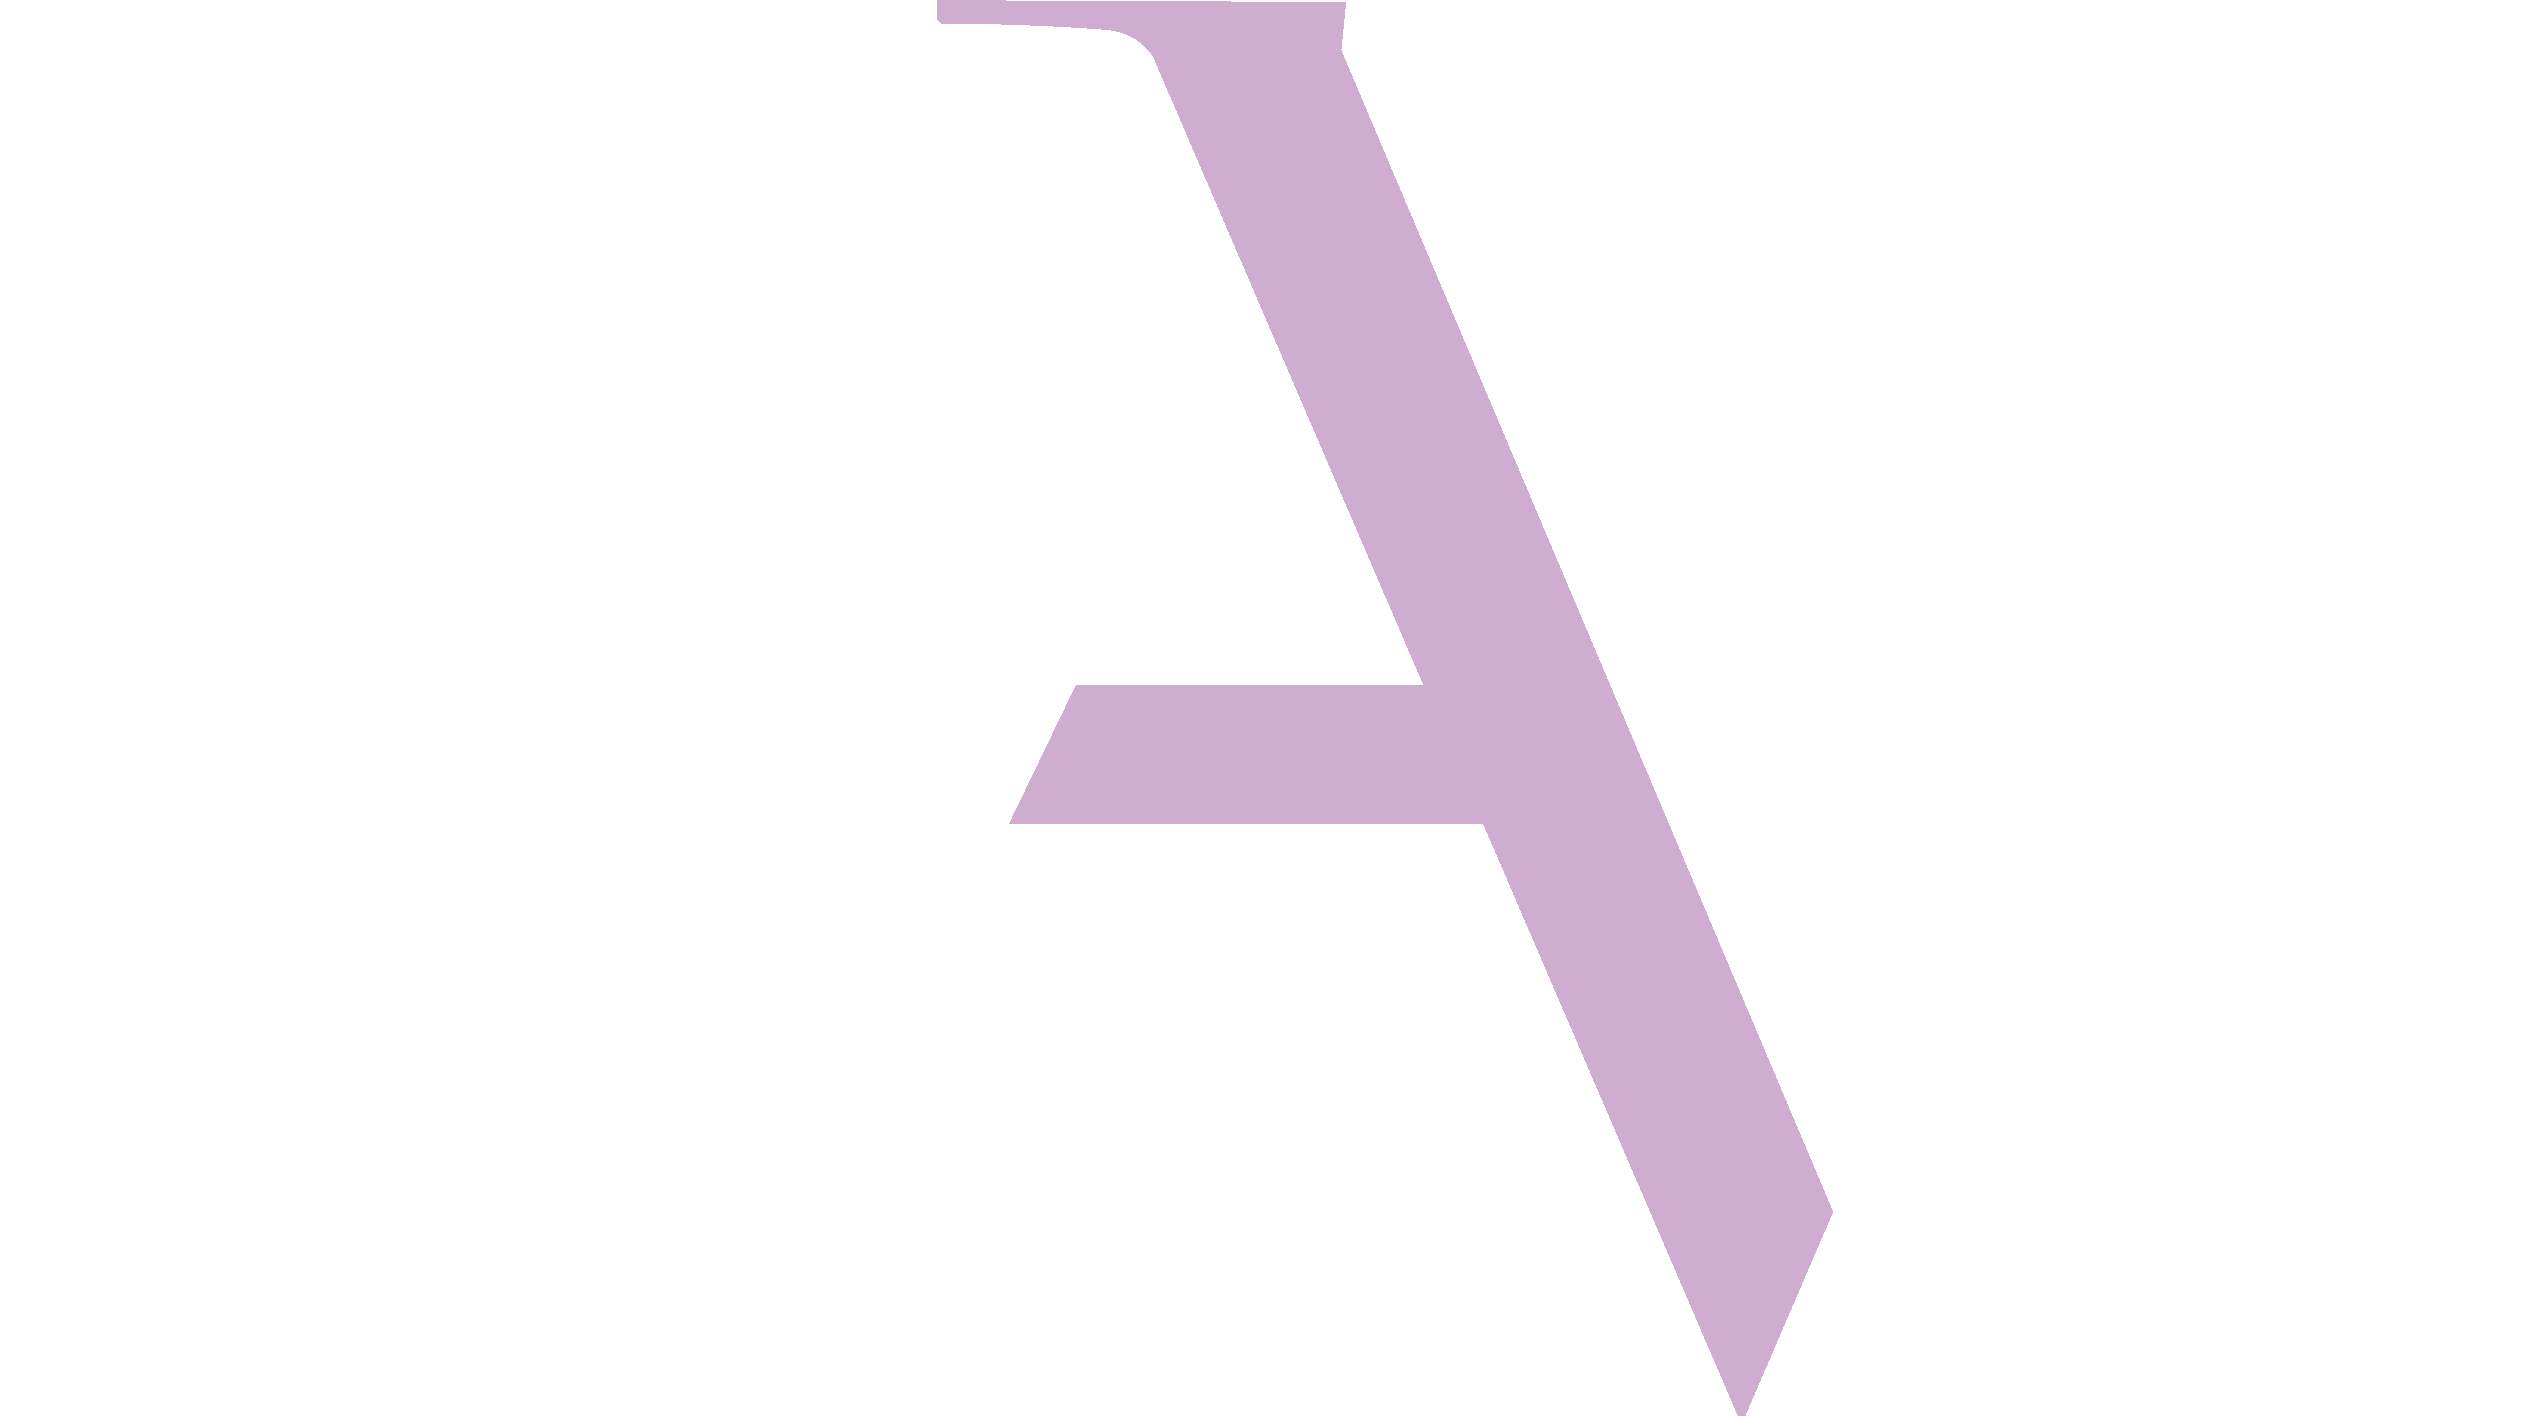 A-W Watermark (Inverted).png